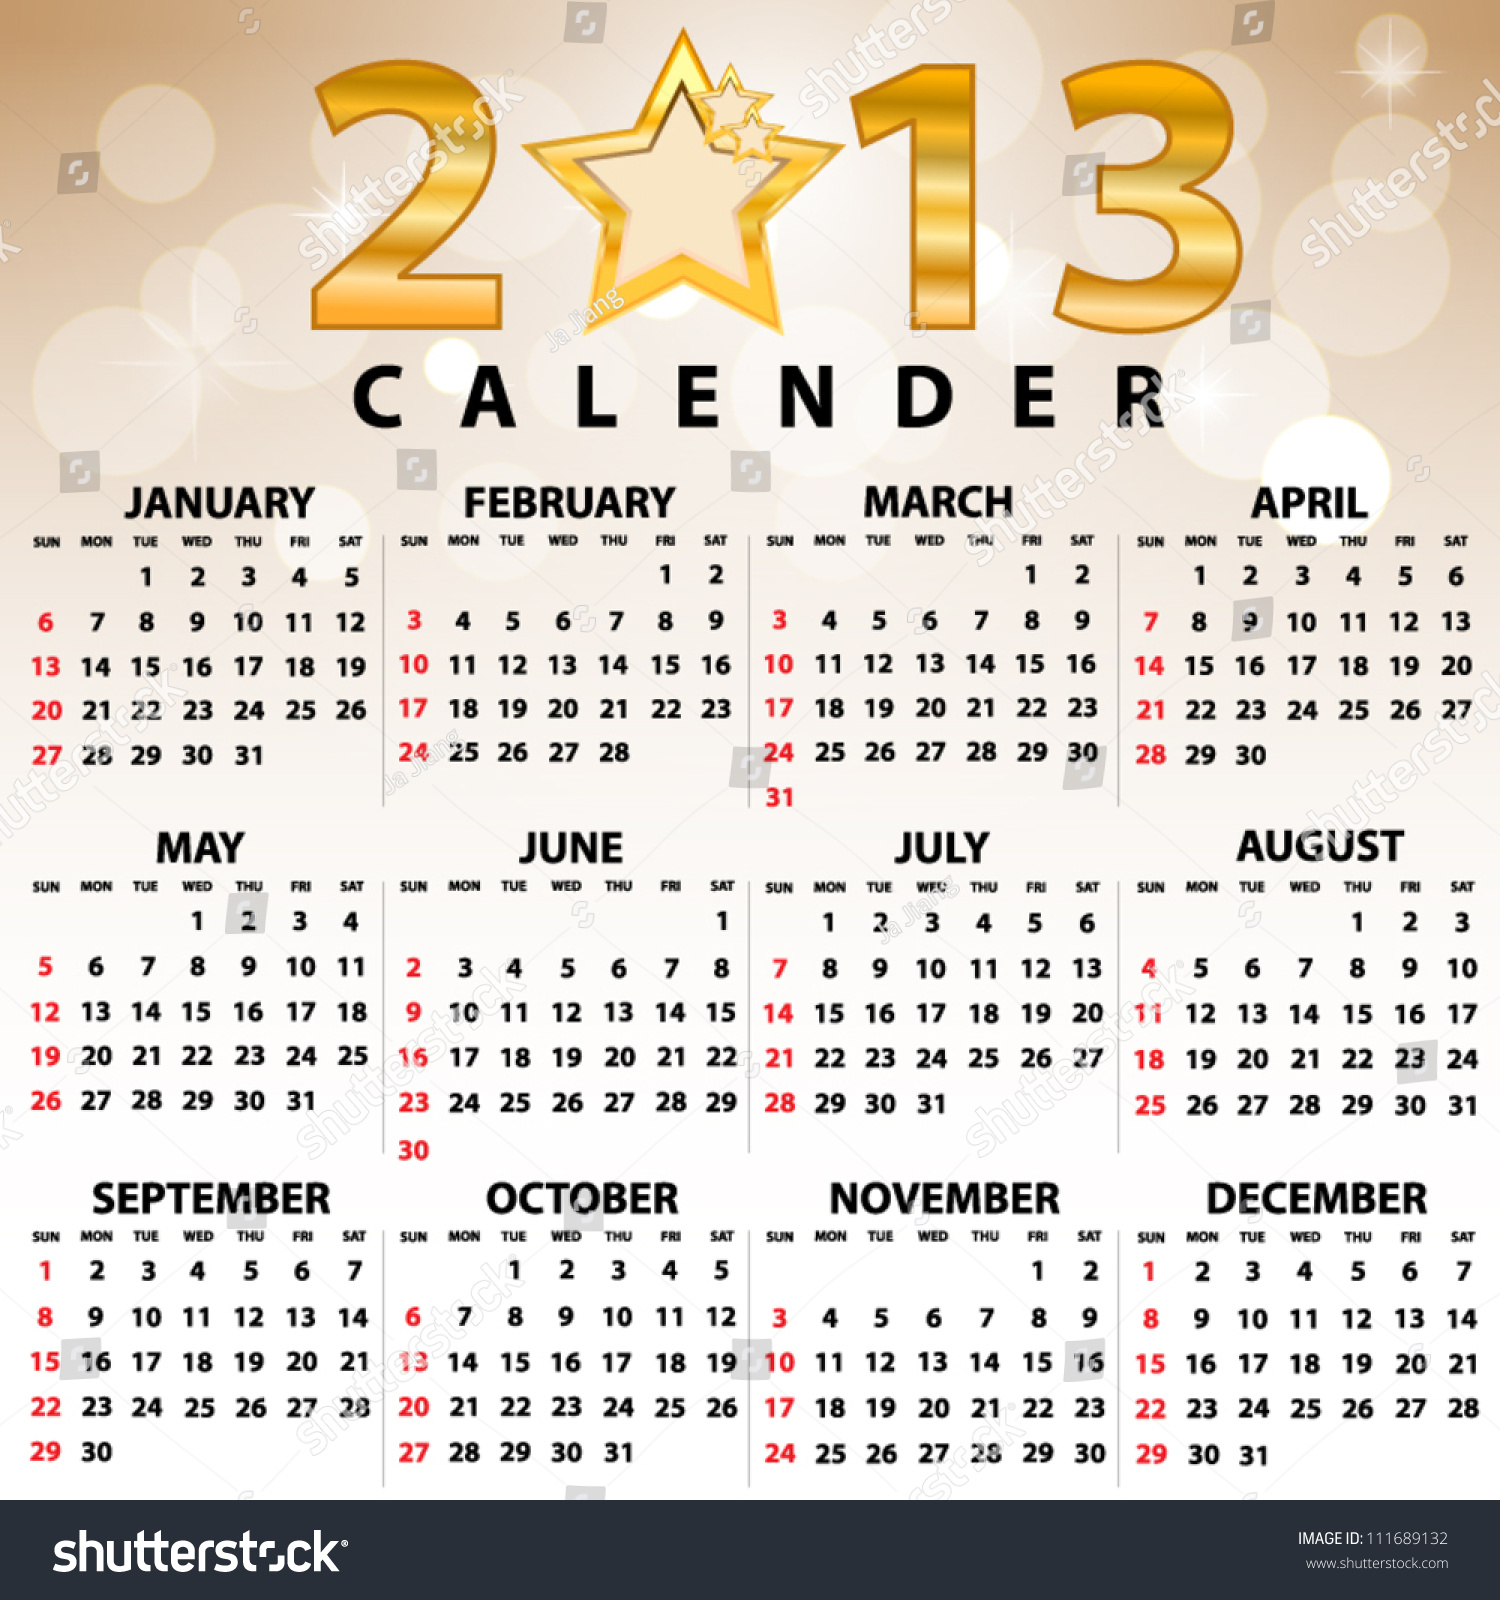 Calendar Month Illustration : Calendar full year months stock vector